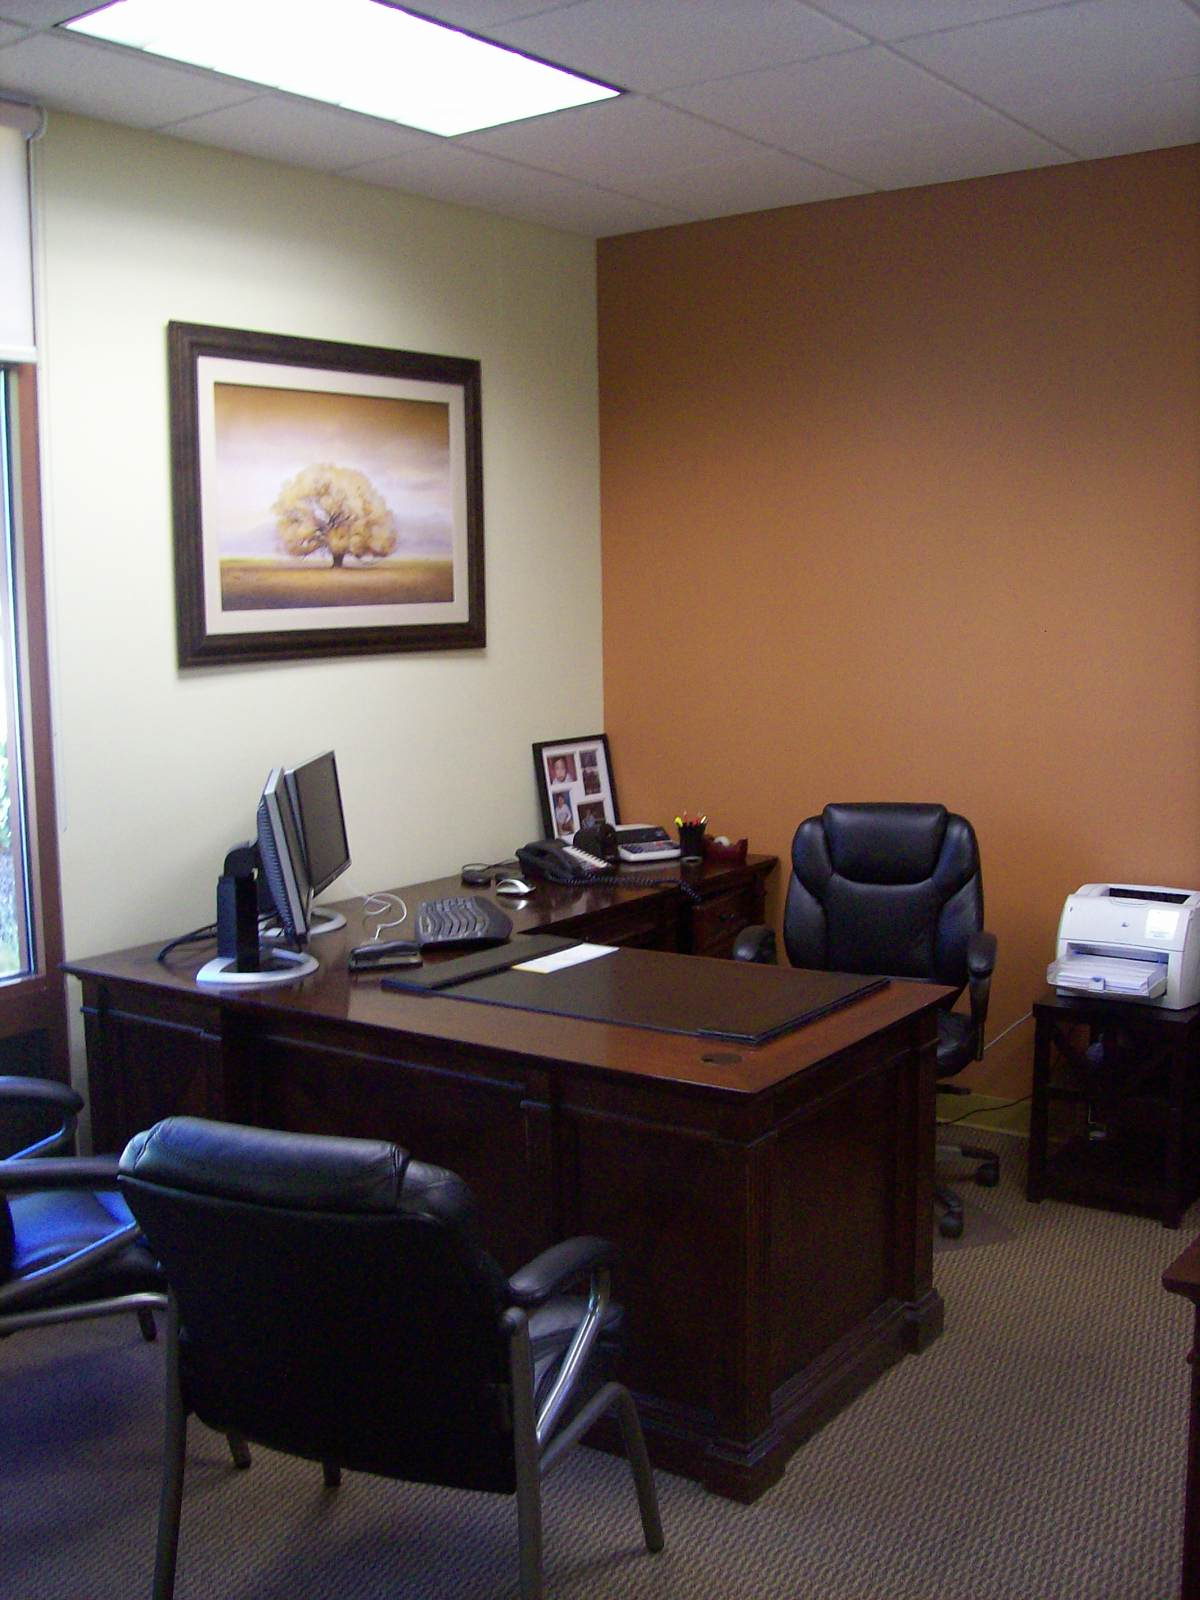 round up my professional interior design work accountant office